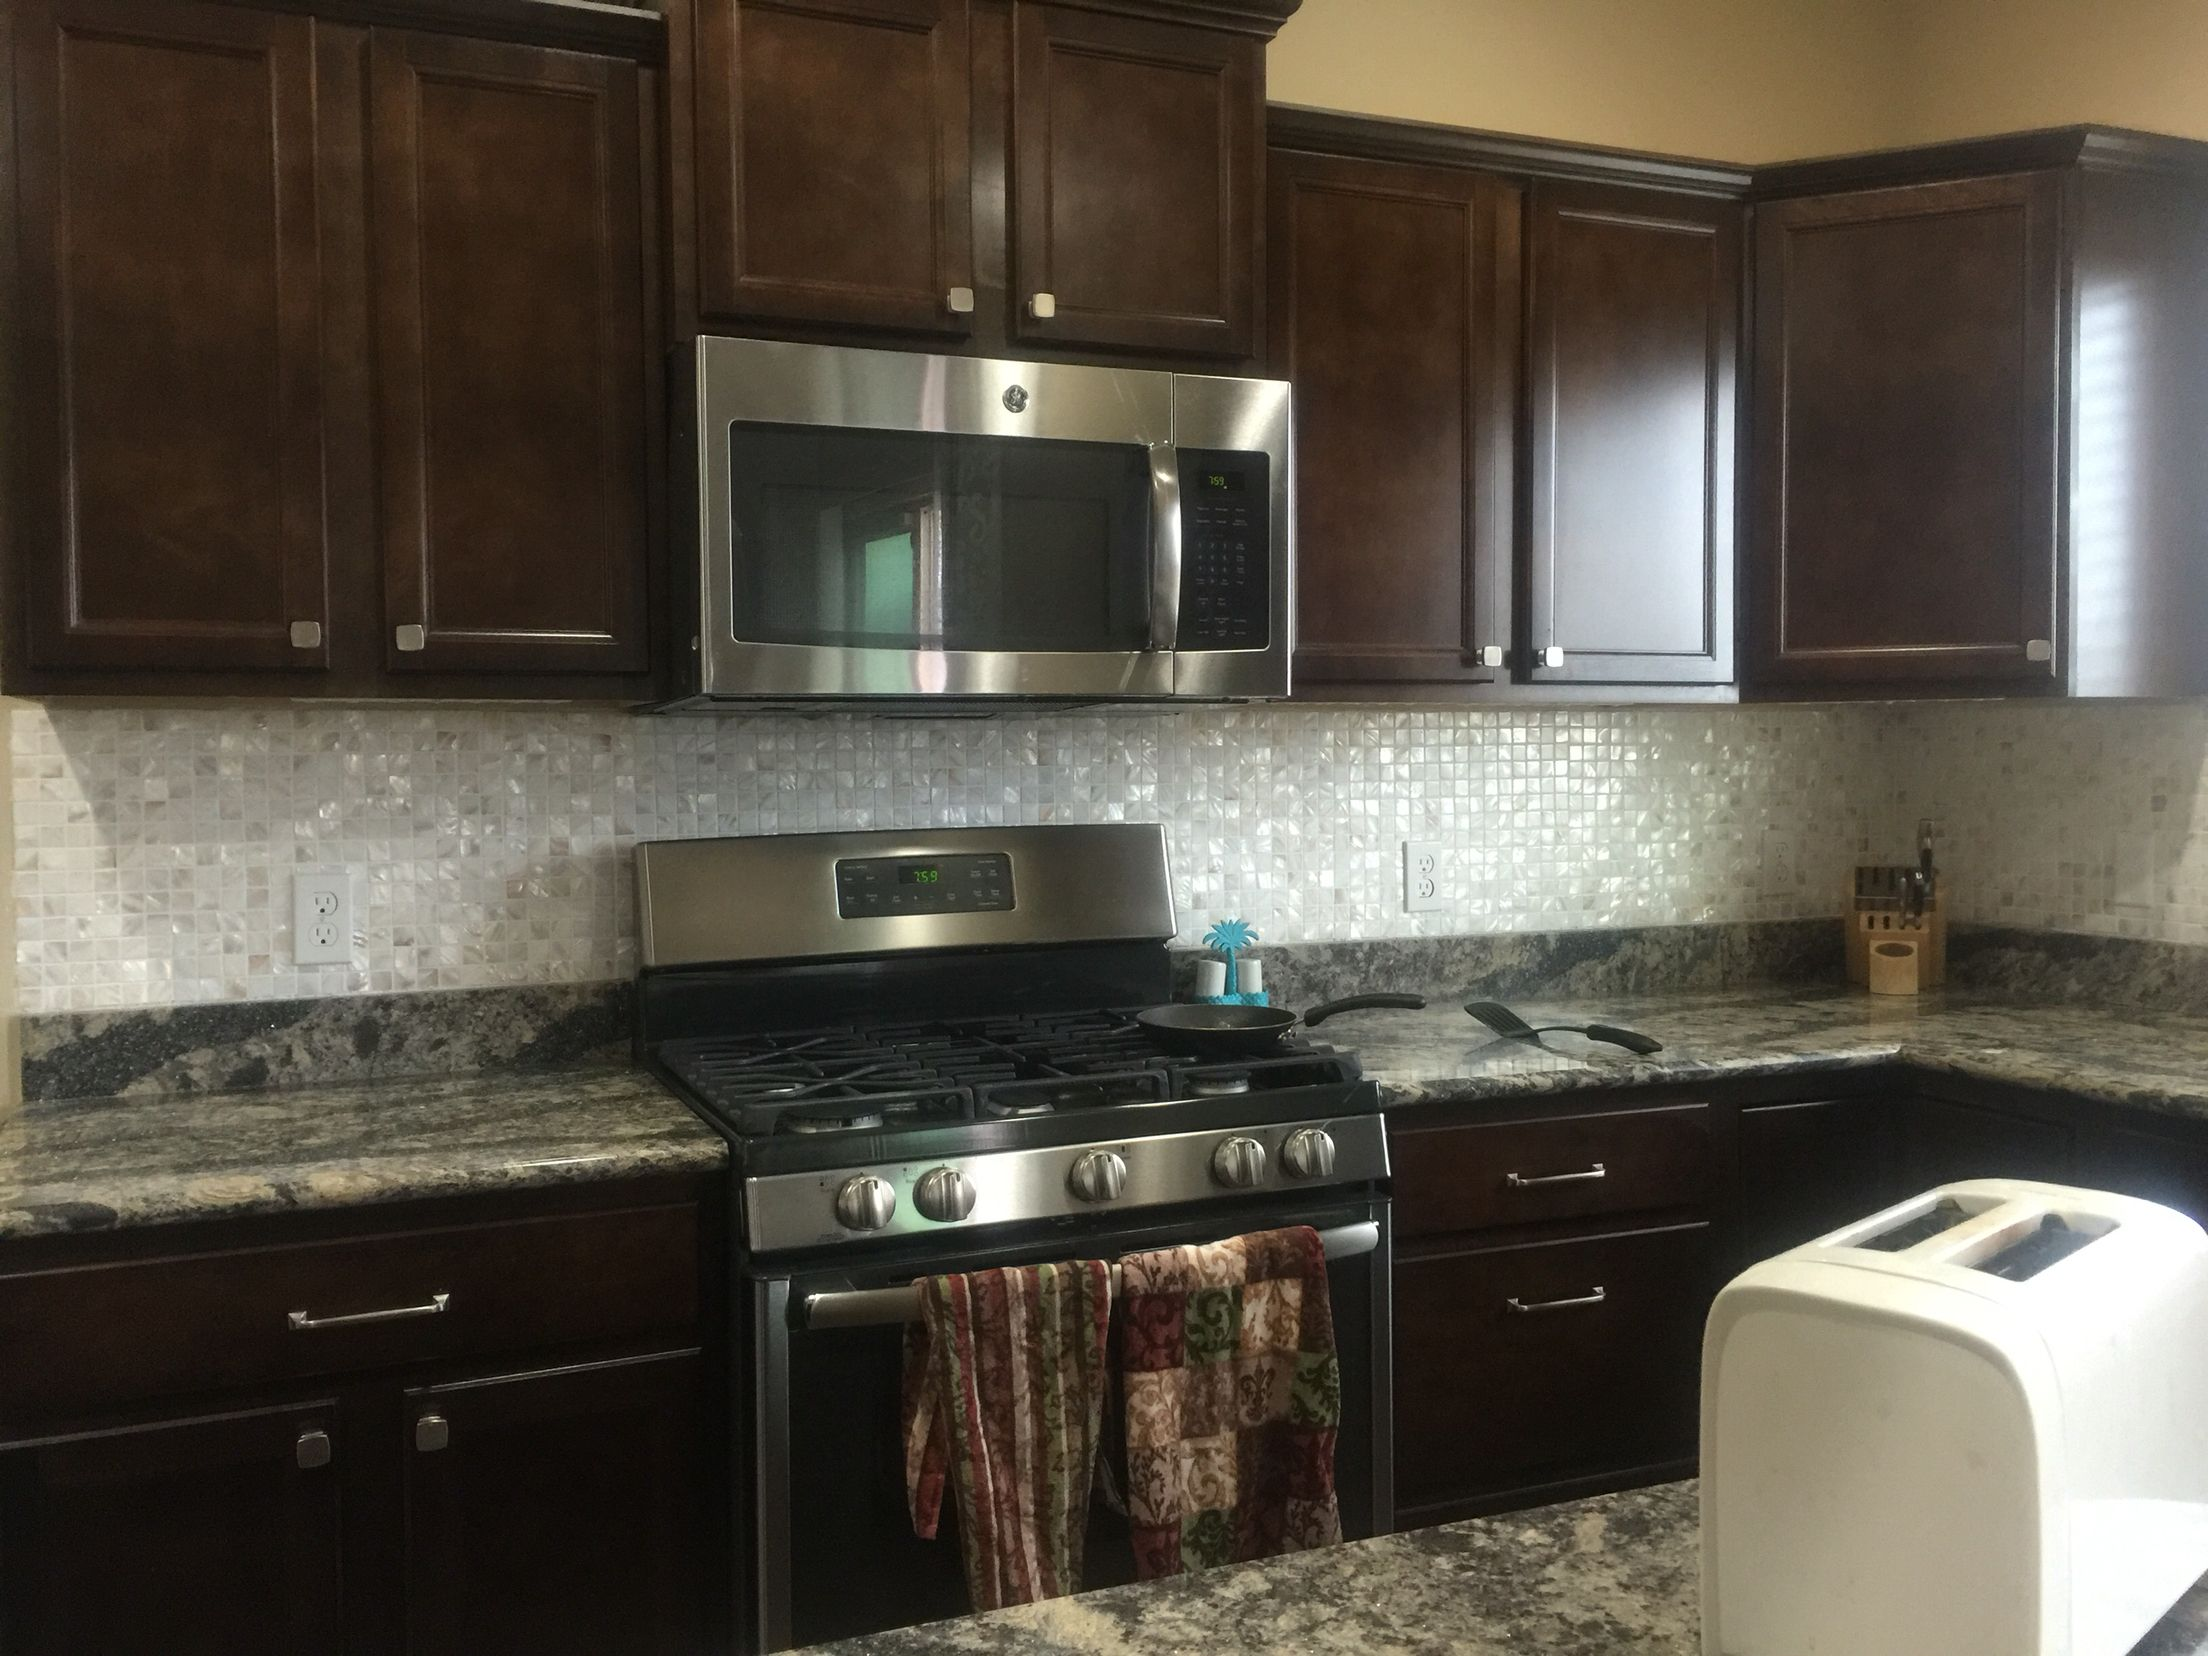 Mother Of Pearl Floor Tile Dark cabinets and DYI ...